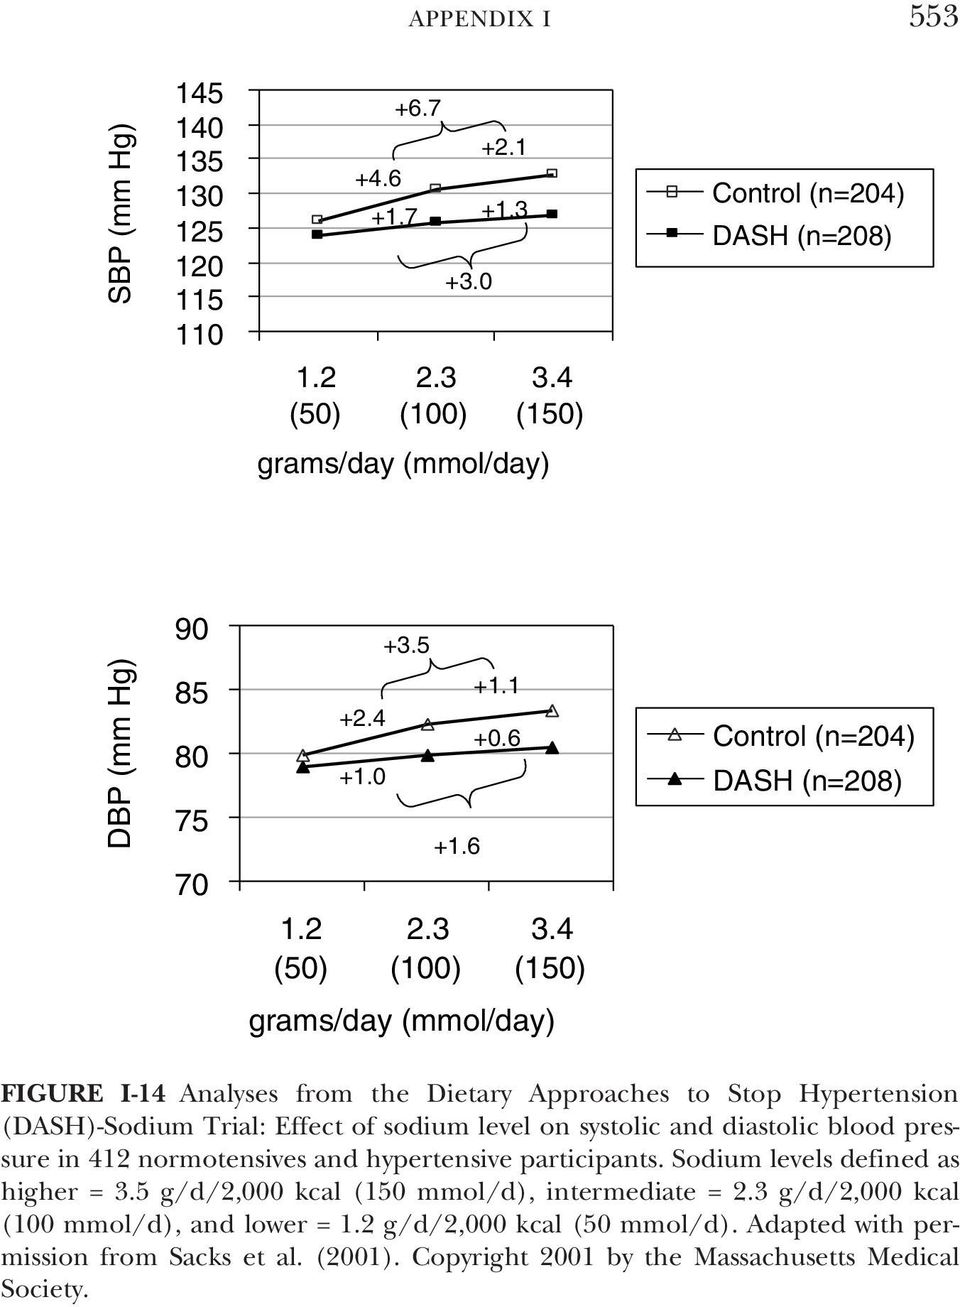 4 (150) Control (n=204) DASH (n=208) FIGURE I-14 Analyses from the Dietary Approaches to Stop Hypertension (DASH)-Sodium Trial: Effect of sodium level on systolic and